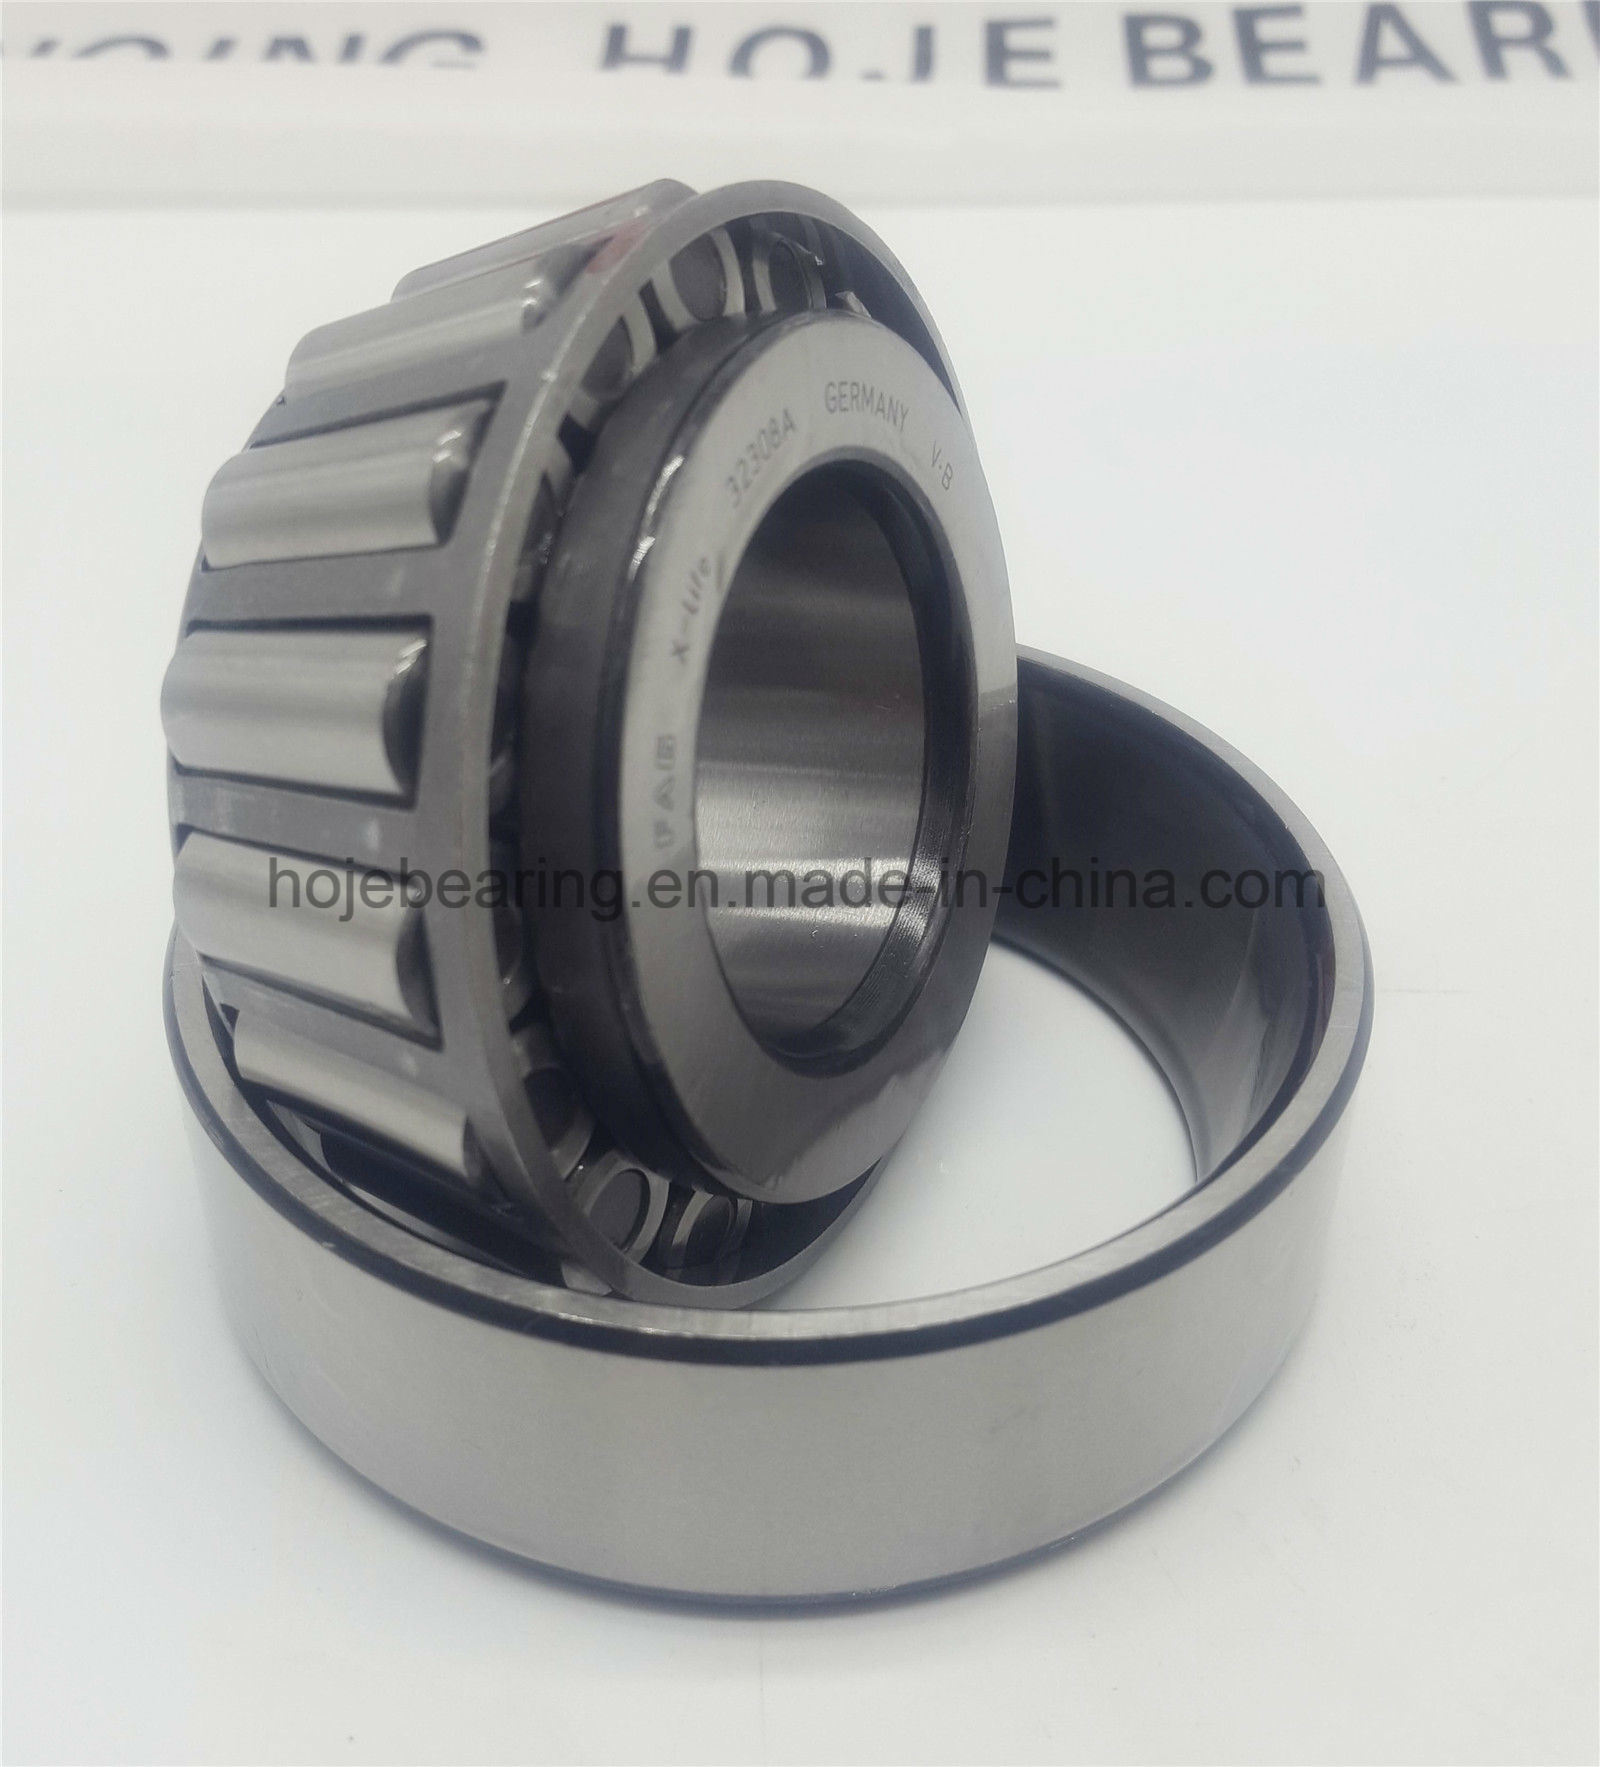 Single Row Taper Roller Bearing 33109 32009 with High Quality